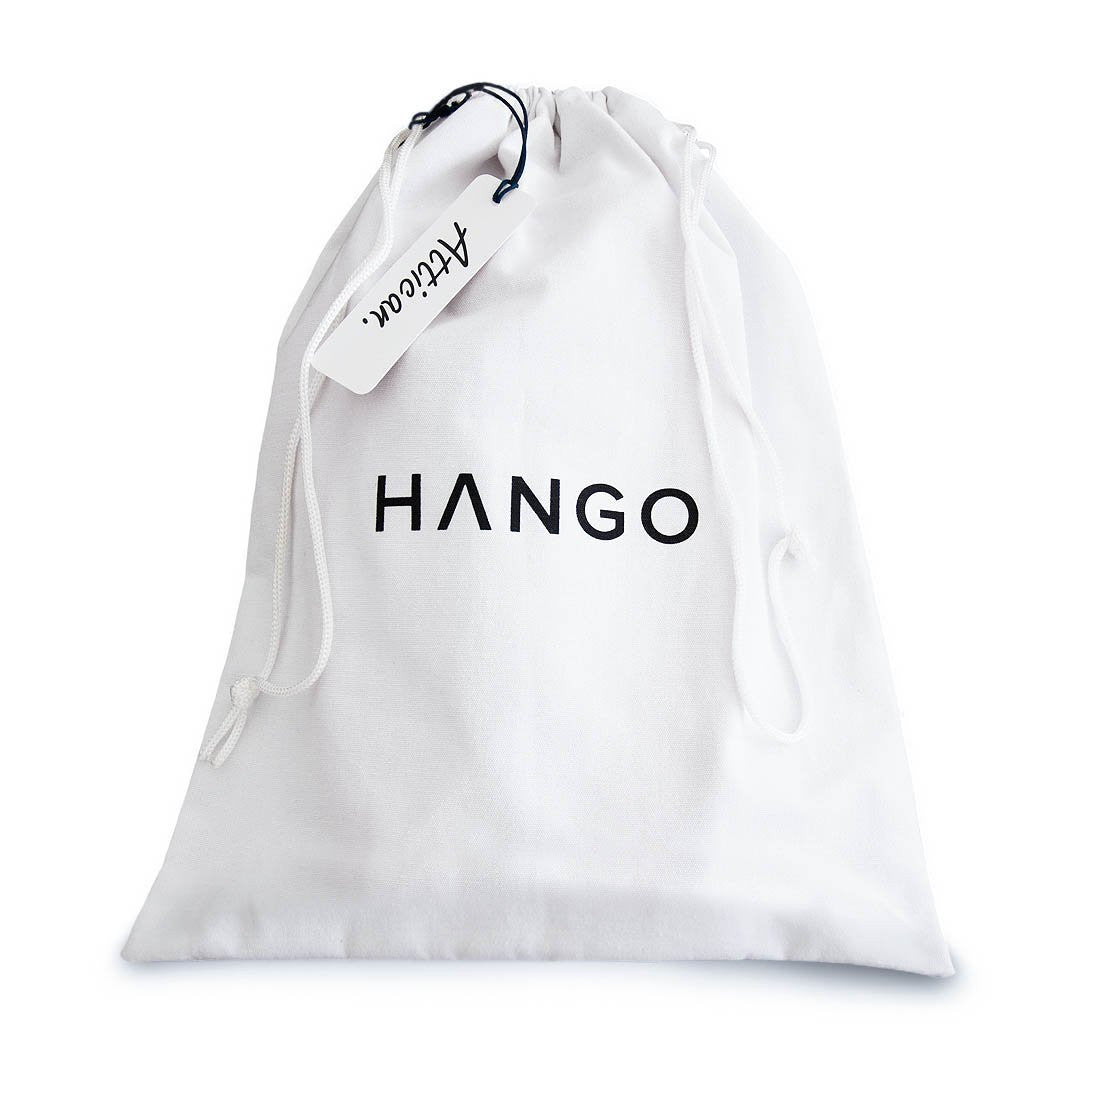 Hango Insulated Lunch Bag - Prep it